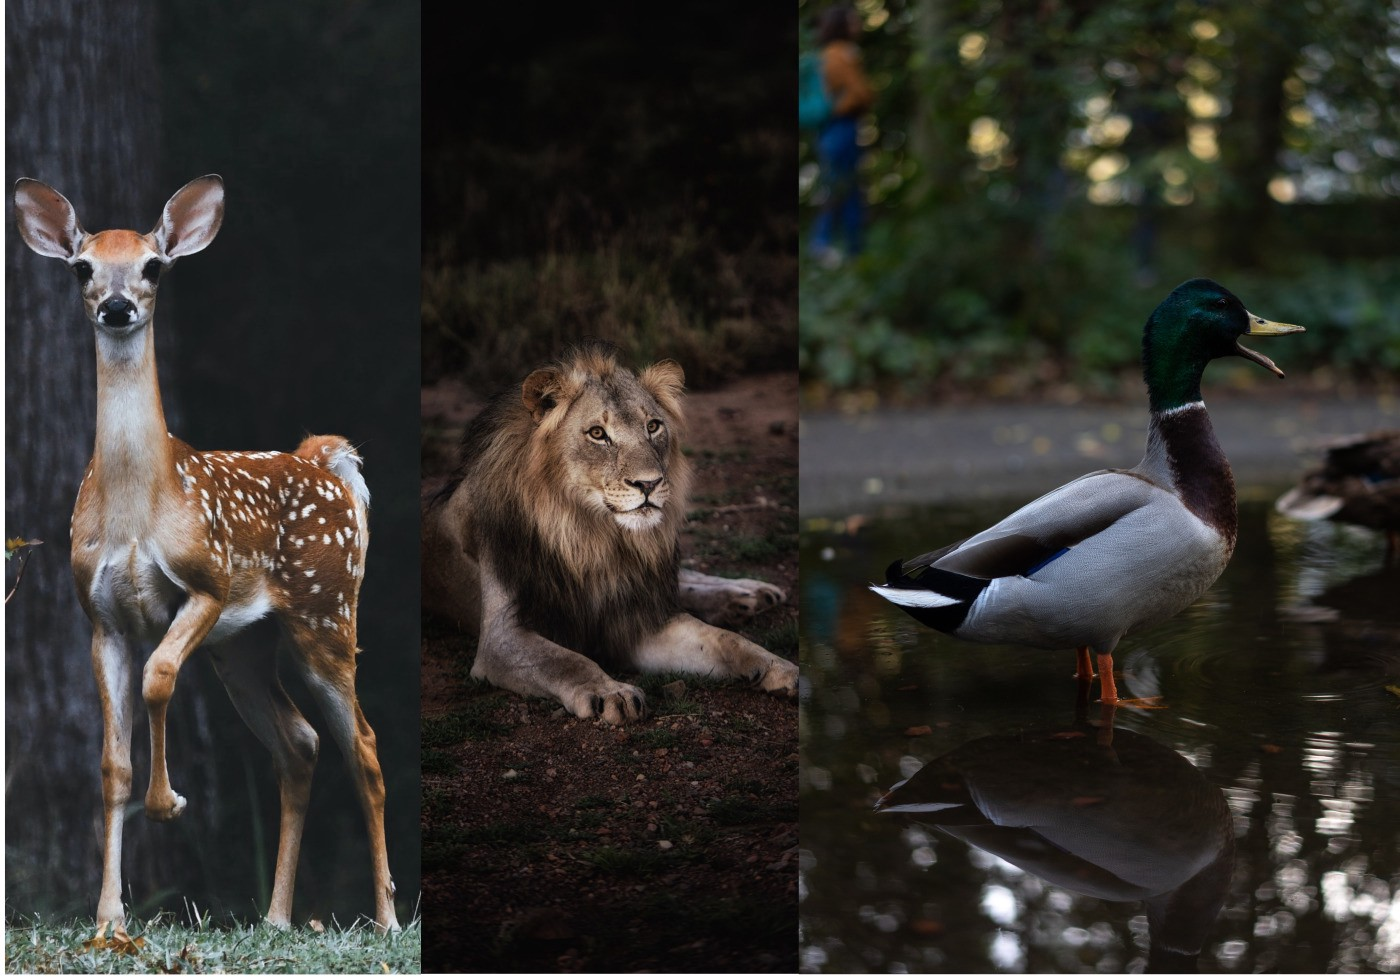 Image of a Deer, lion and Duck